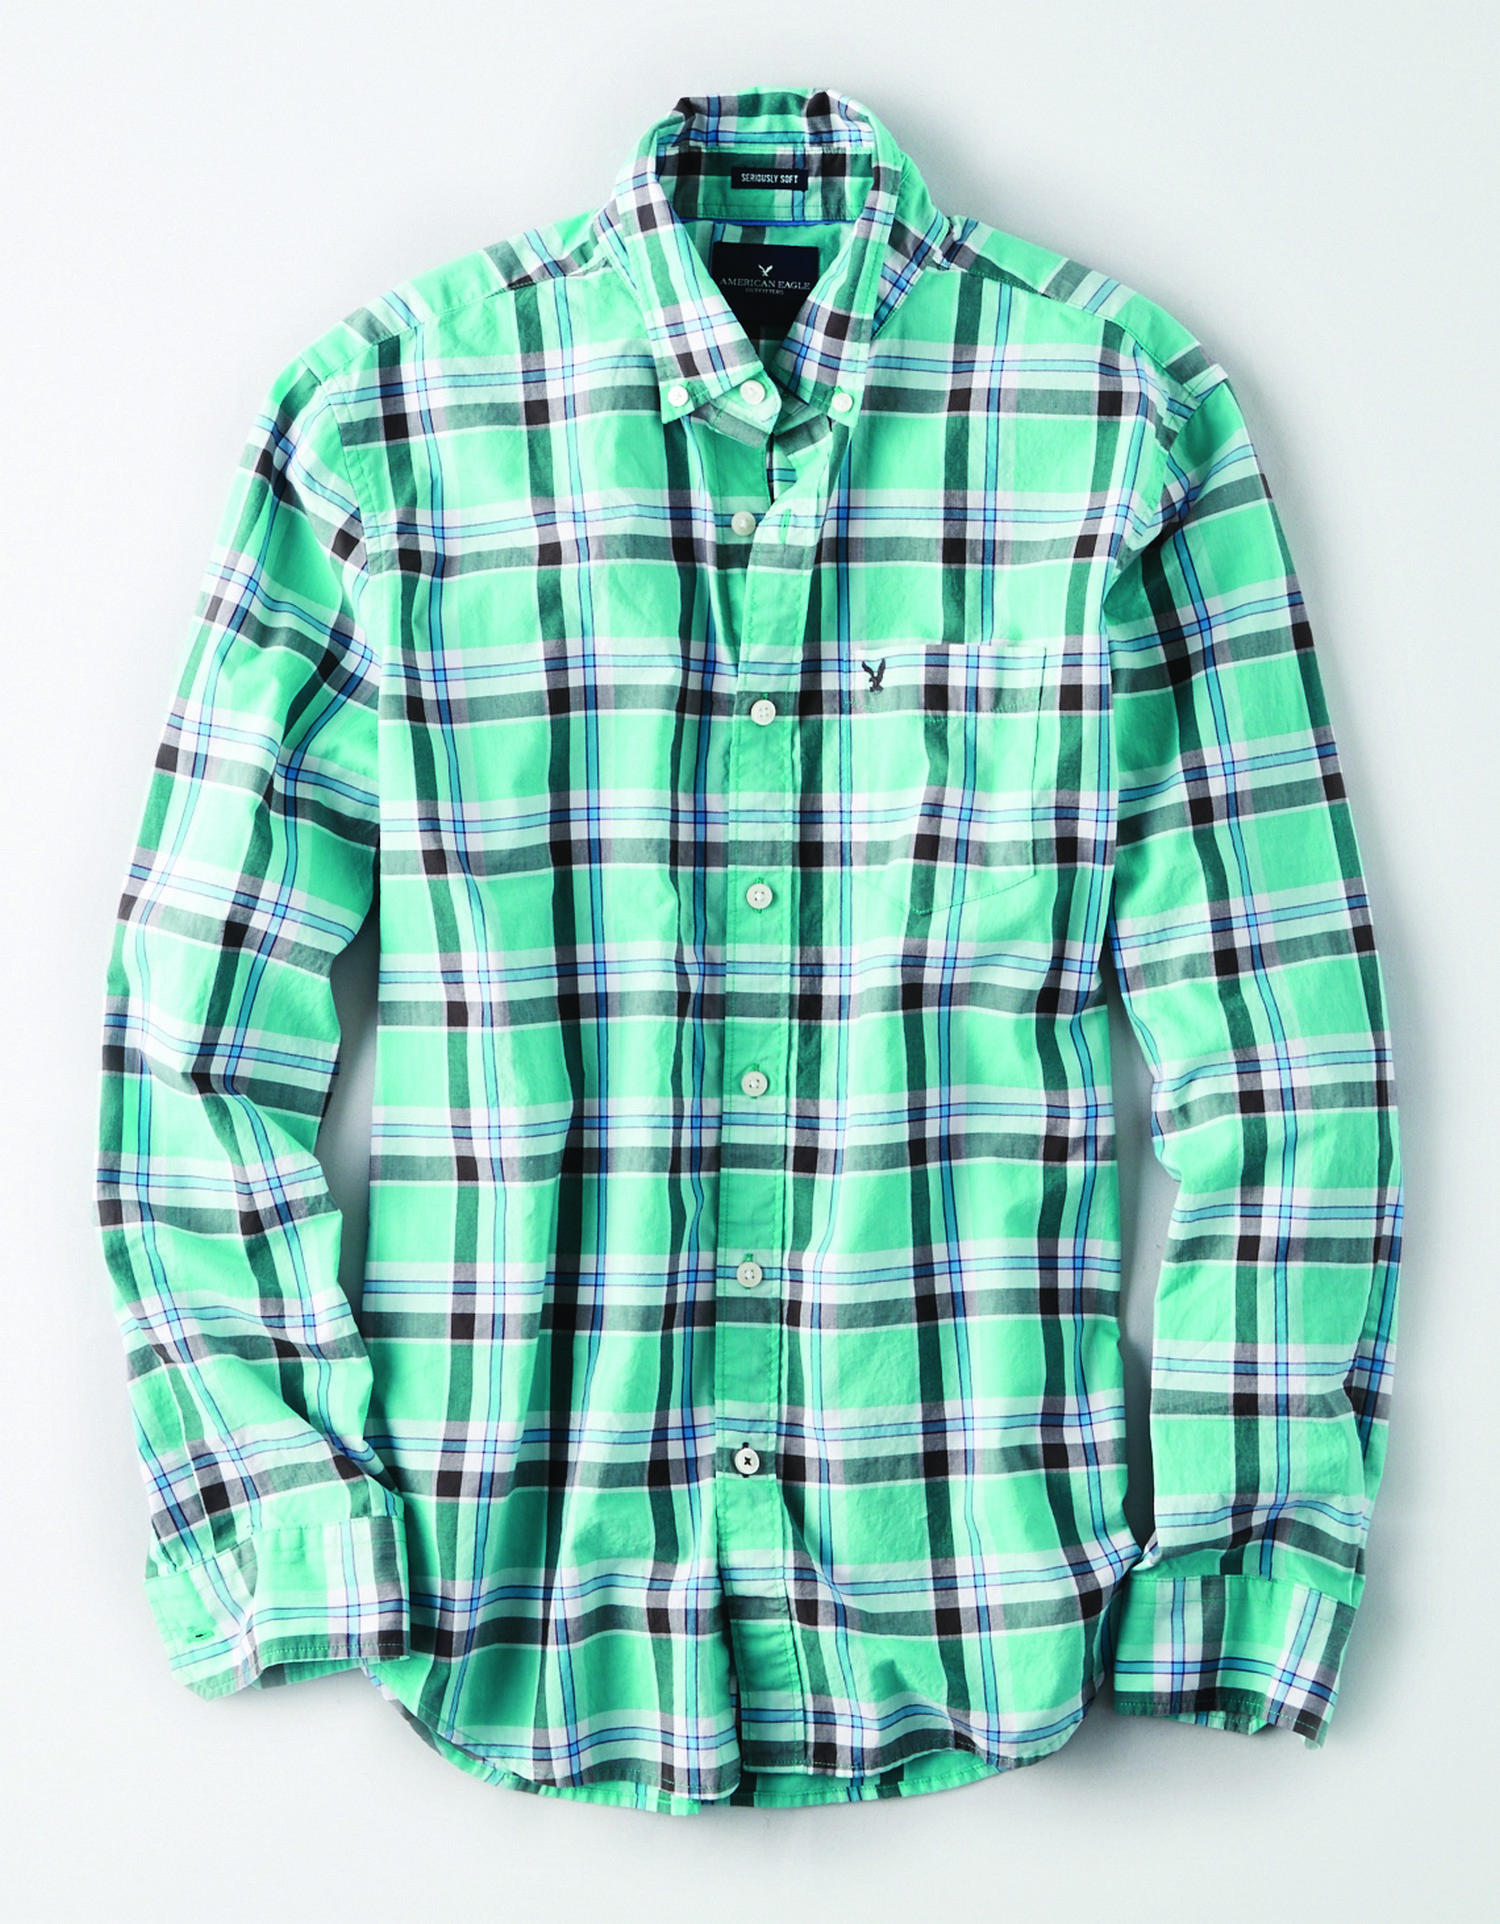 AE - INTL - Apparel - M - CF Oxford BD - Turquoise, grey and white plaid - grey embroidered eagle on left chest pocket KS *Tracked